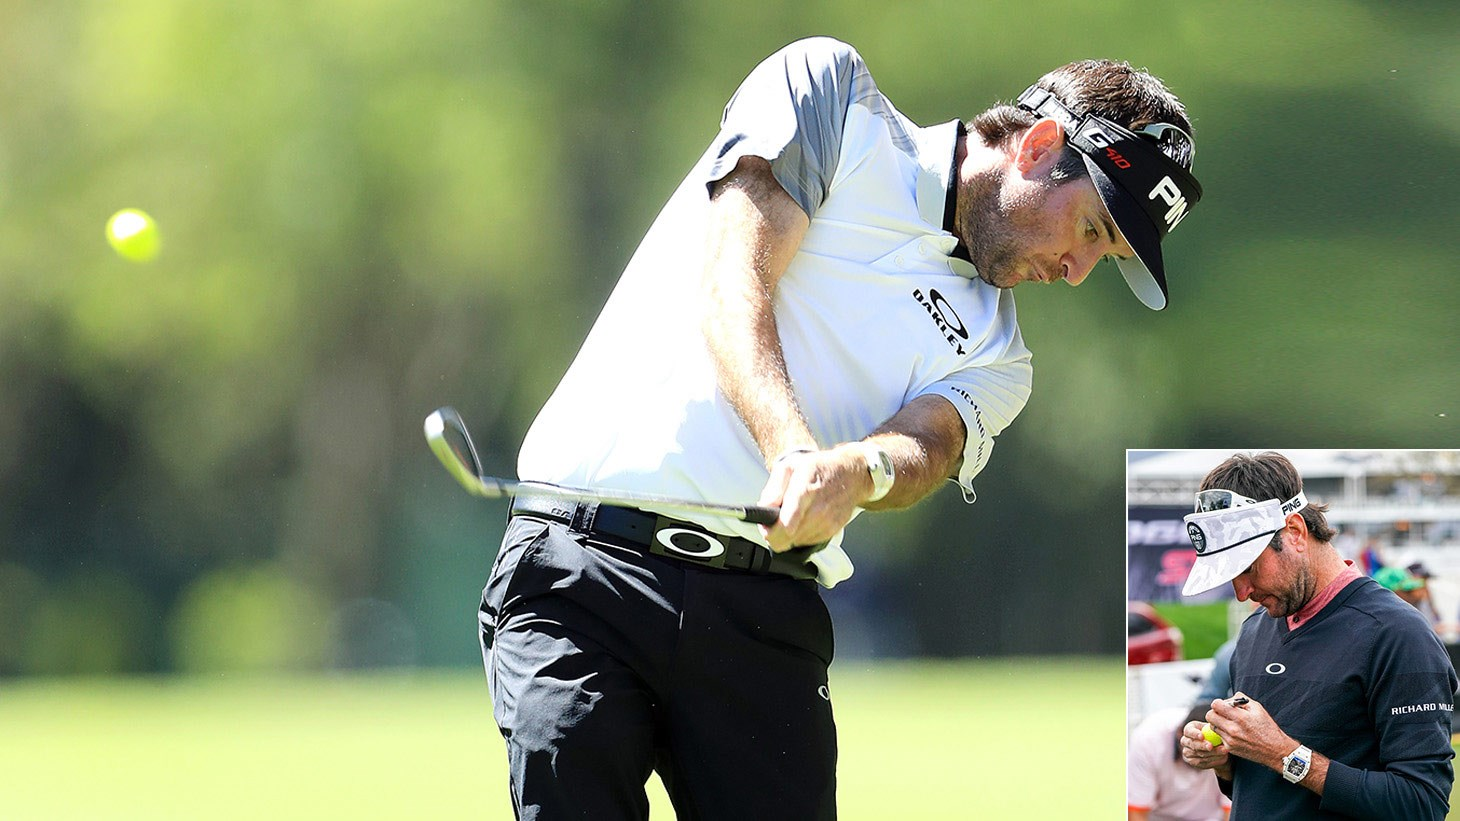 Bubba Watson in action on the PGA TOUR, using a Pro V1x Yellow golf ball